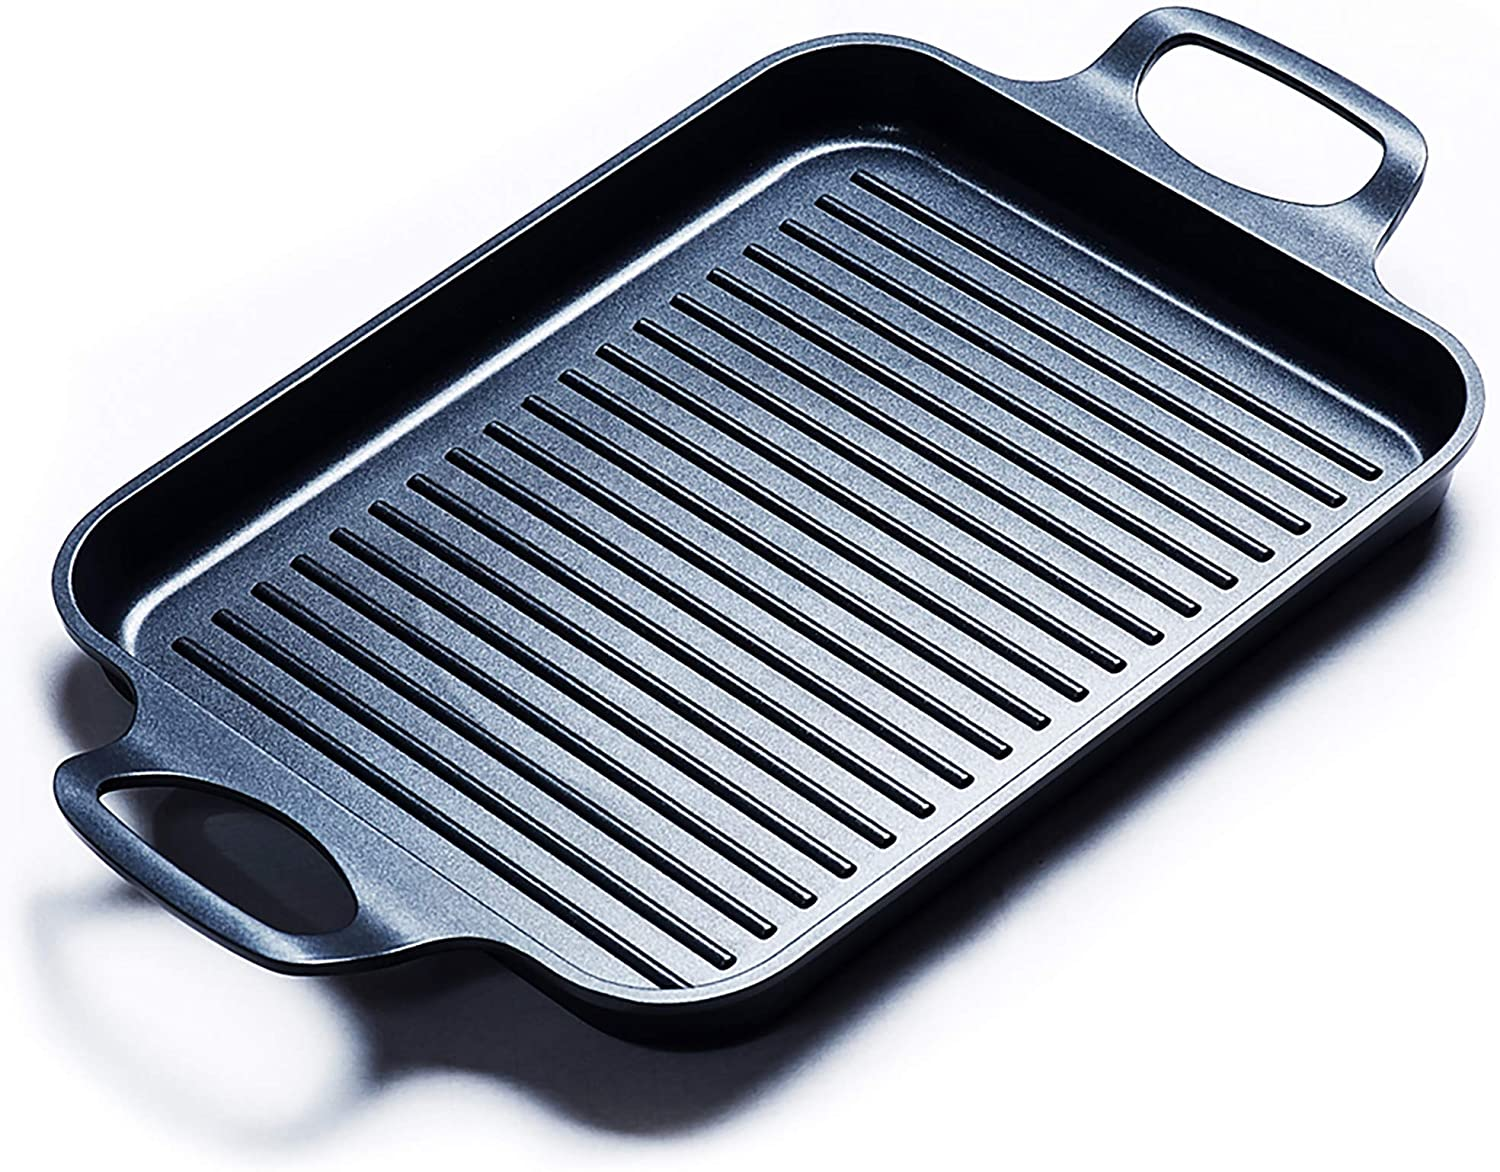 S·KITCHN Stove Top Griddle – Easy to Handle